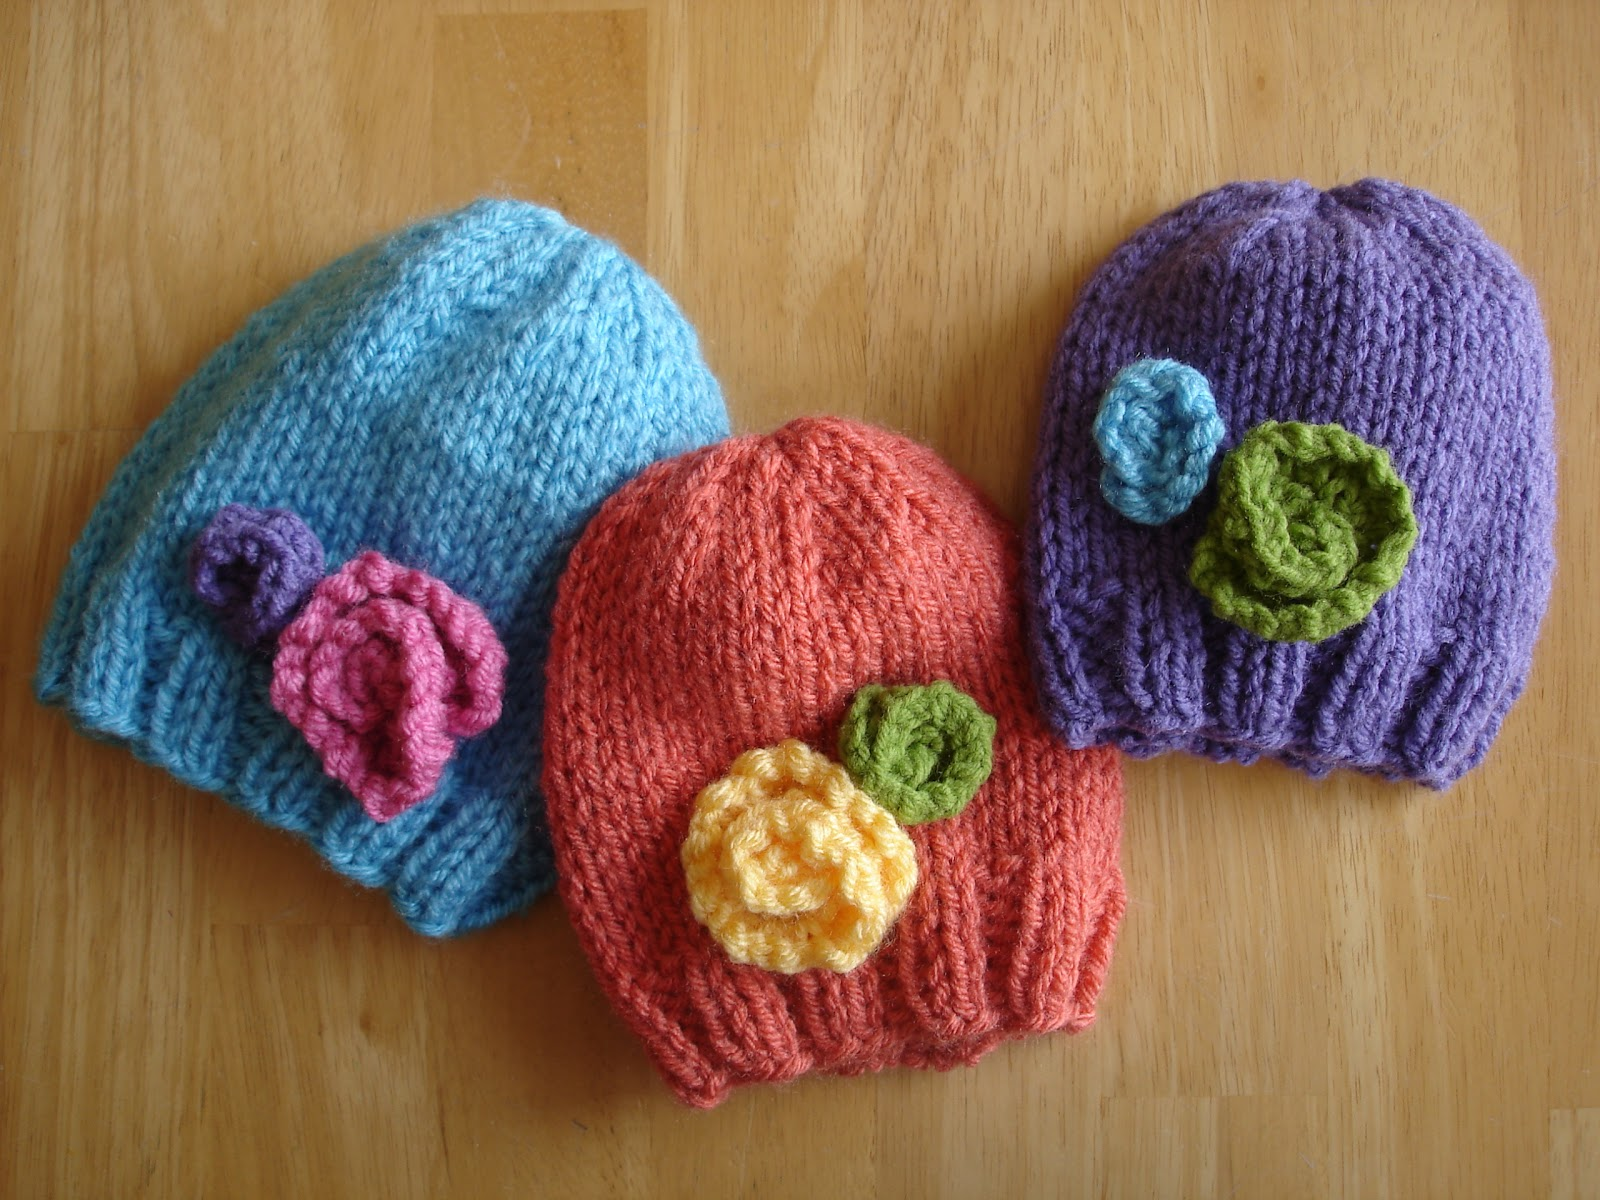 Free Knitting Pattern Childs Hat : Fiber Flux: Free Knitting Pattern! Baby In Bloom Hats